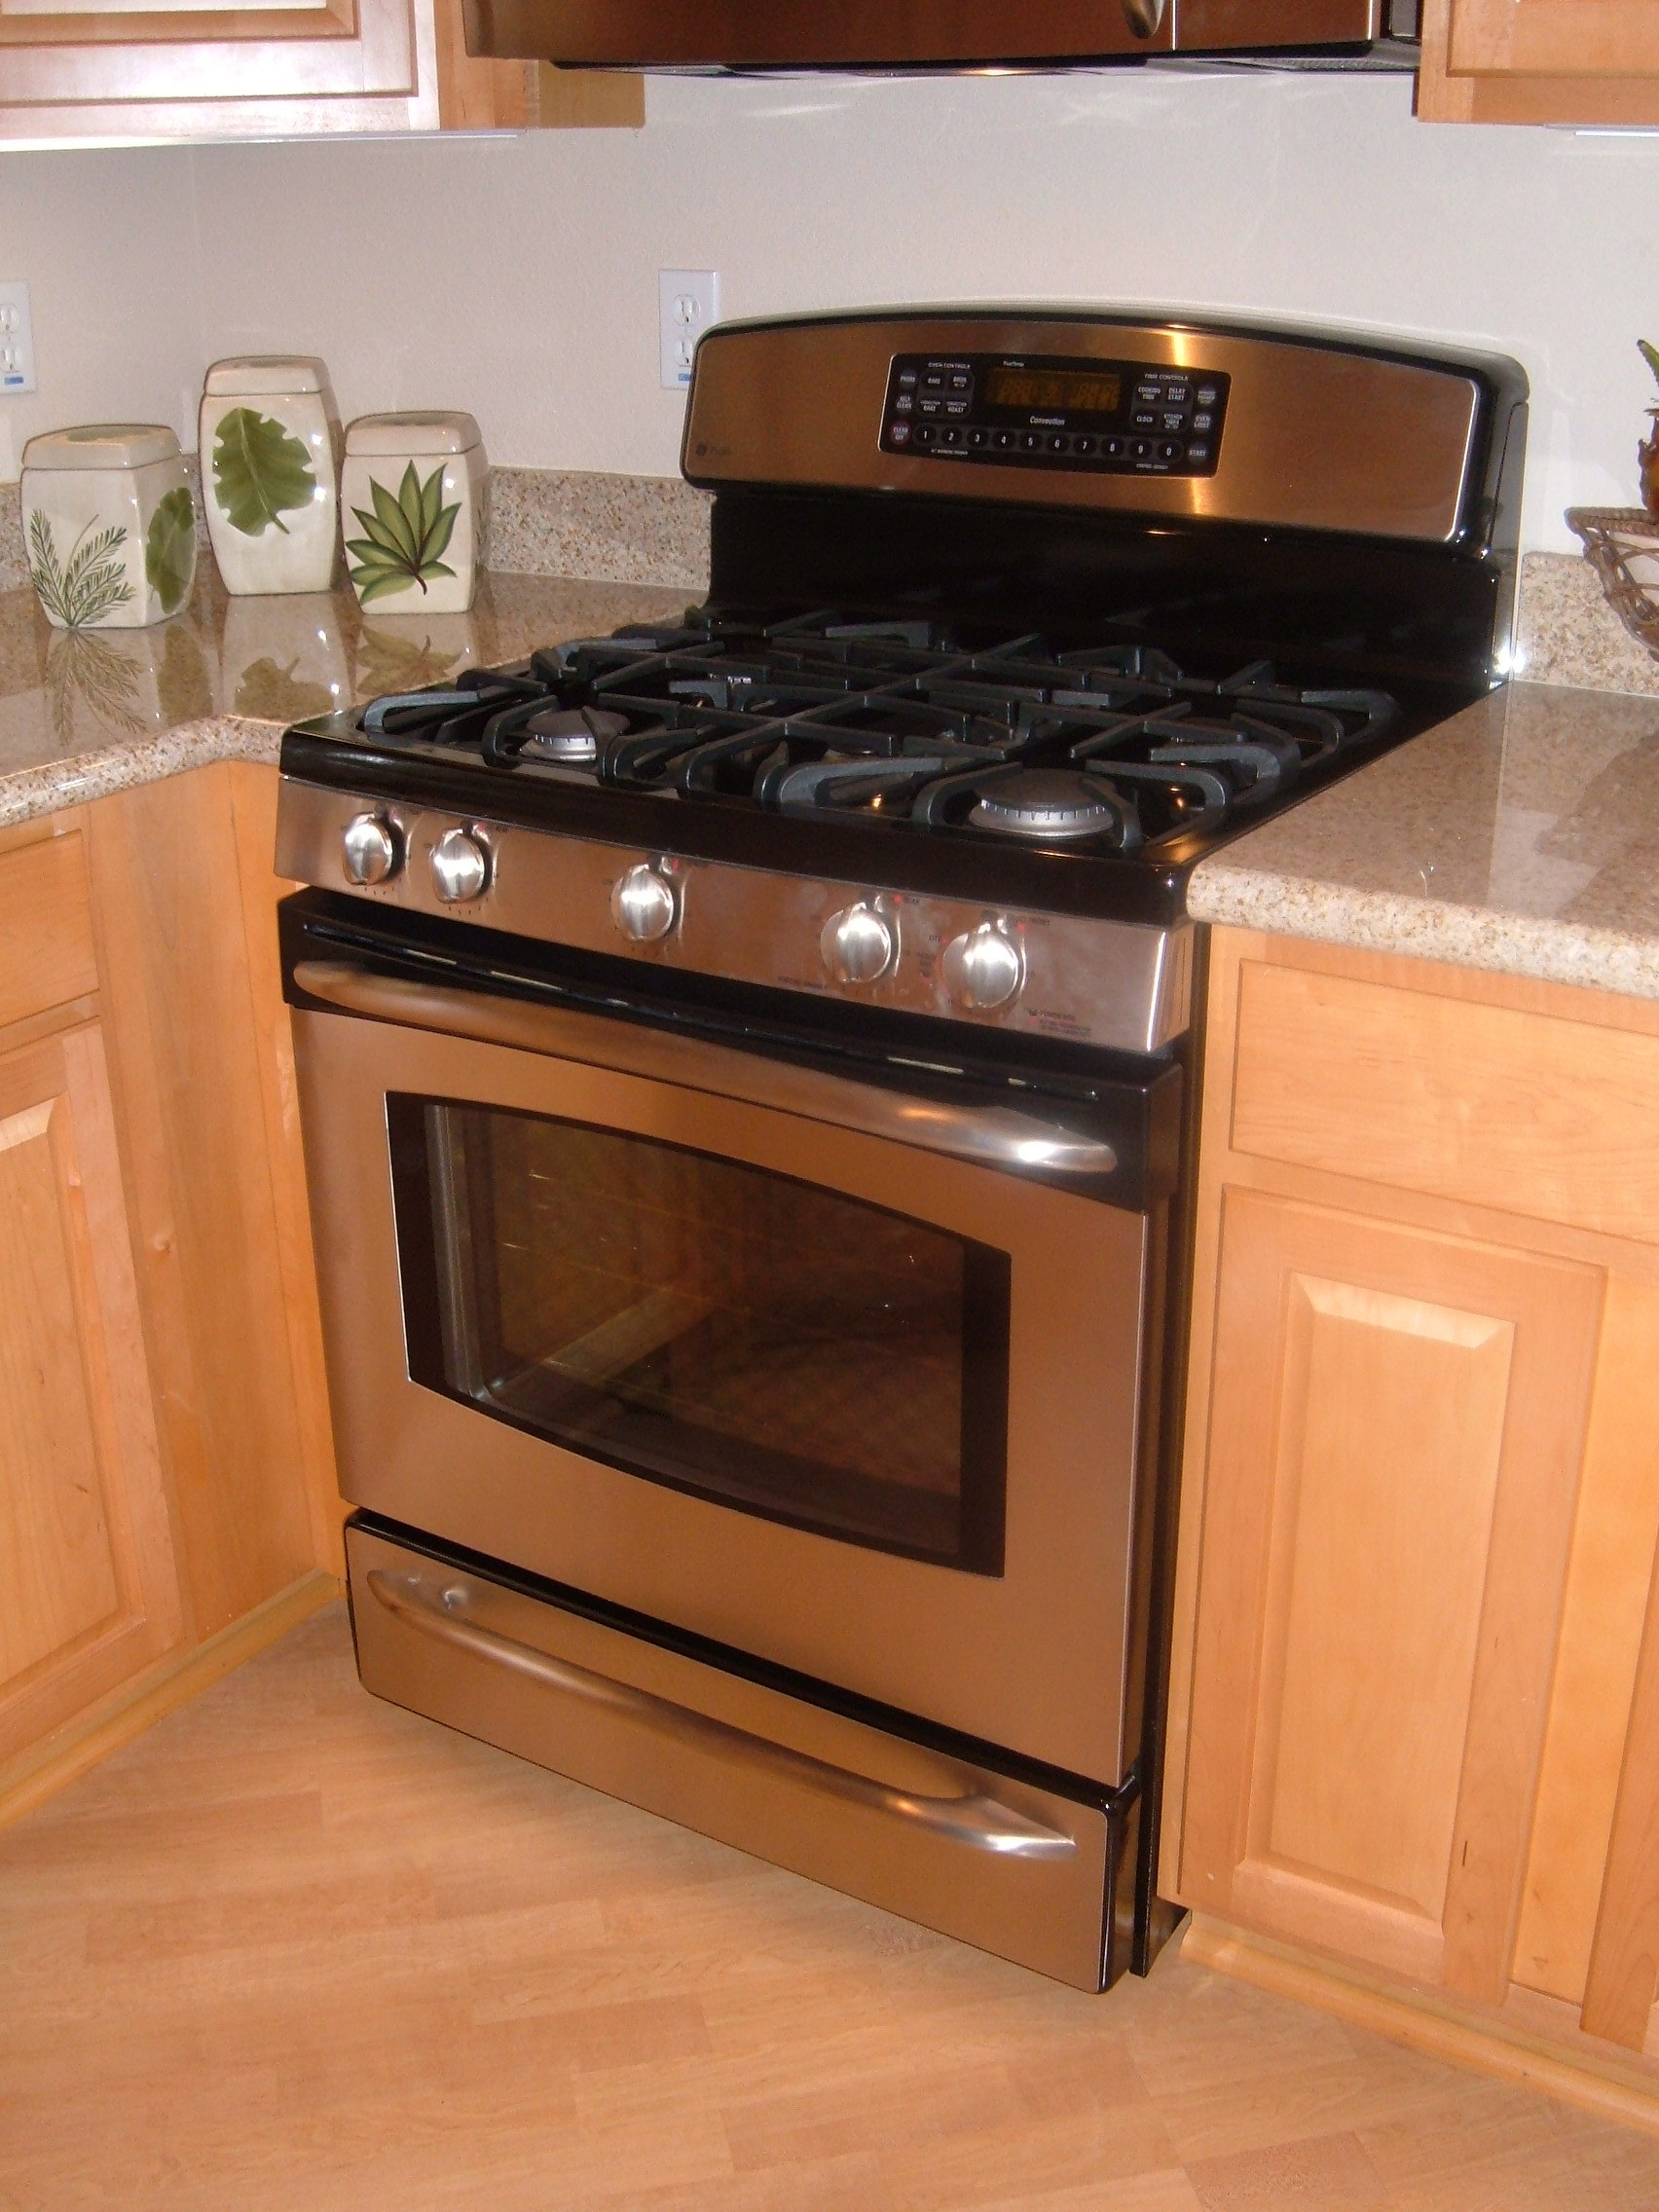 Photos Of Kitchen Islands File Ge Profile Stove Jpg Wikimedia Commons